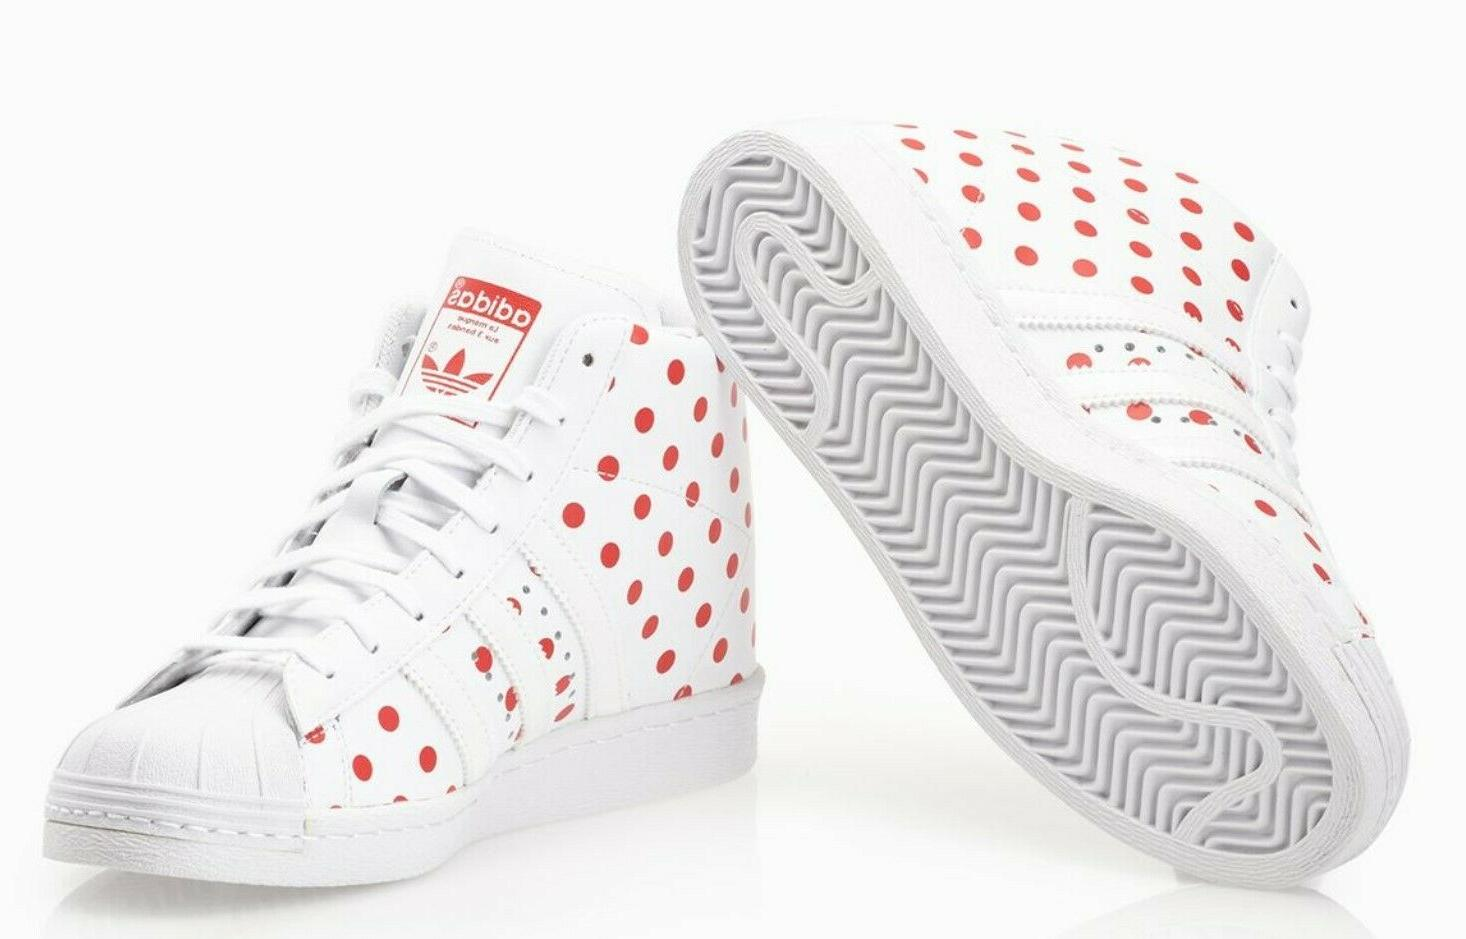 Adidas Superstar Sneaker Shoes 6